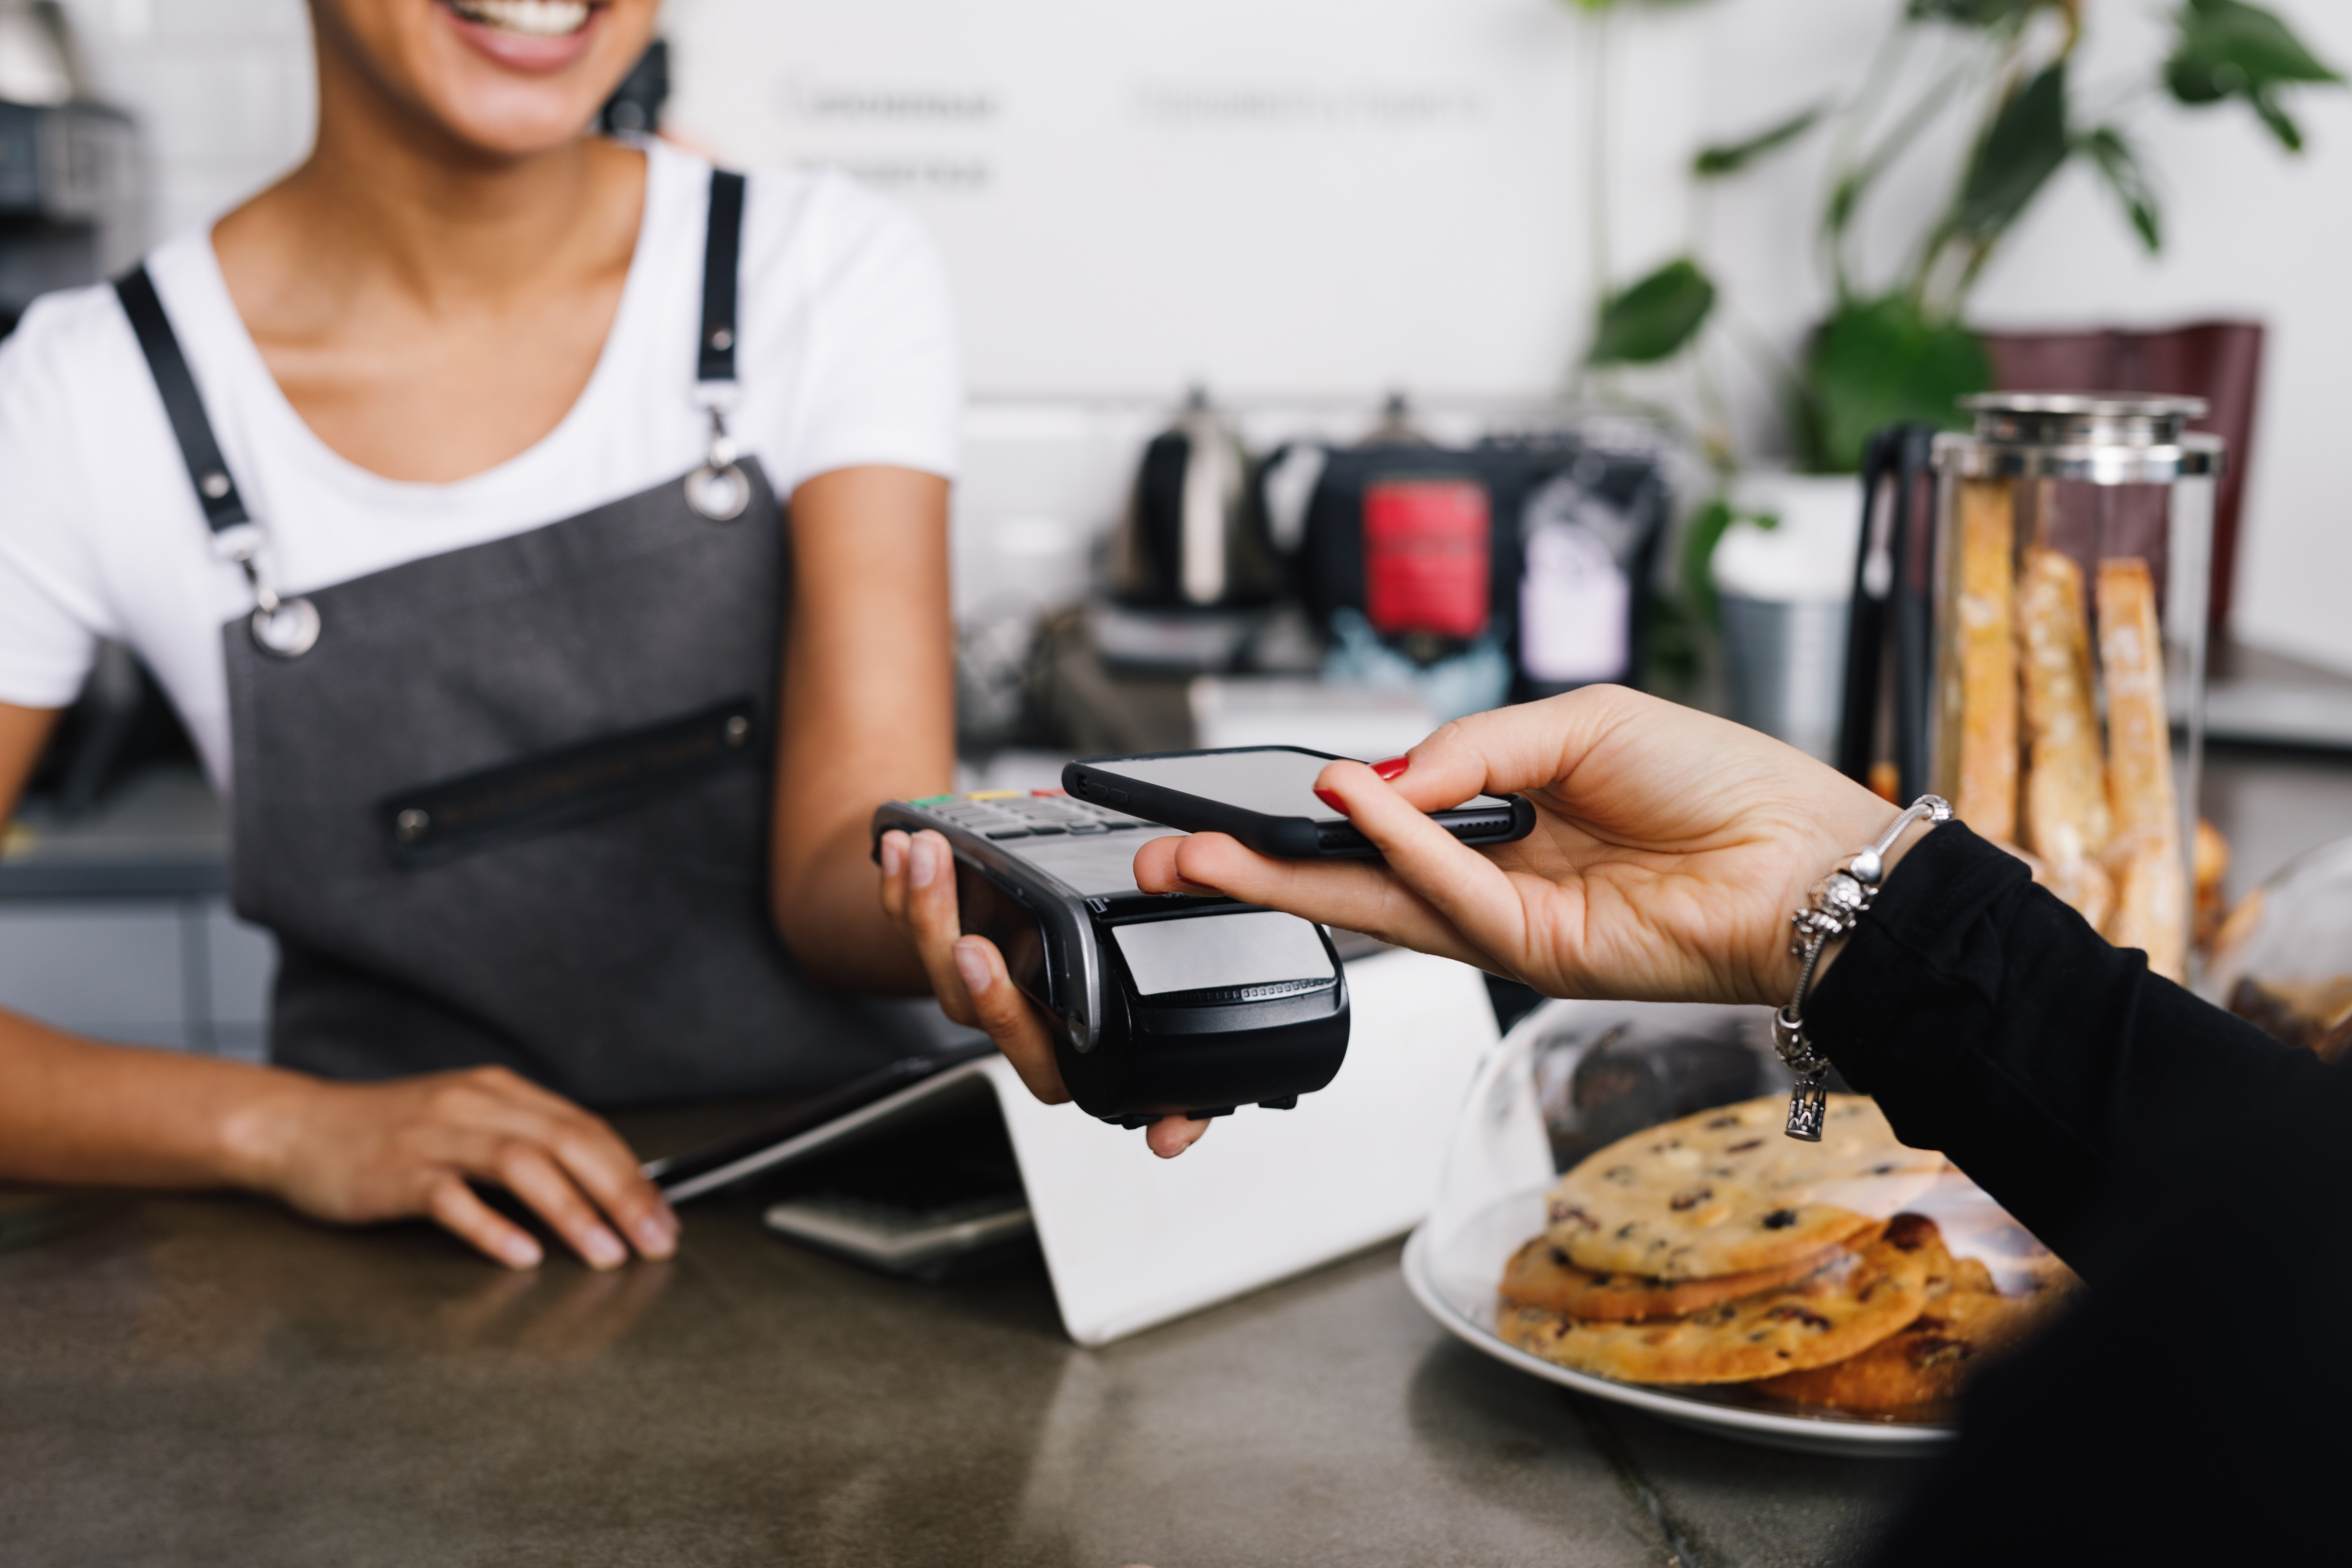 Customer making wireless payment using smartphone in cafe